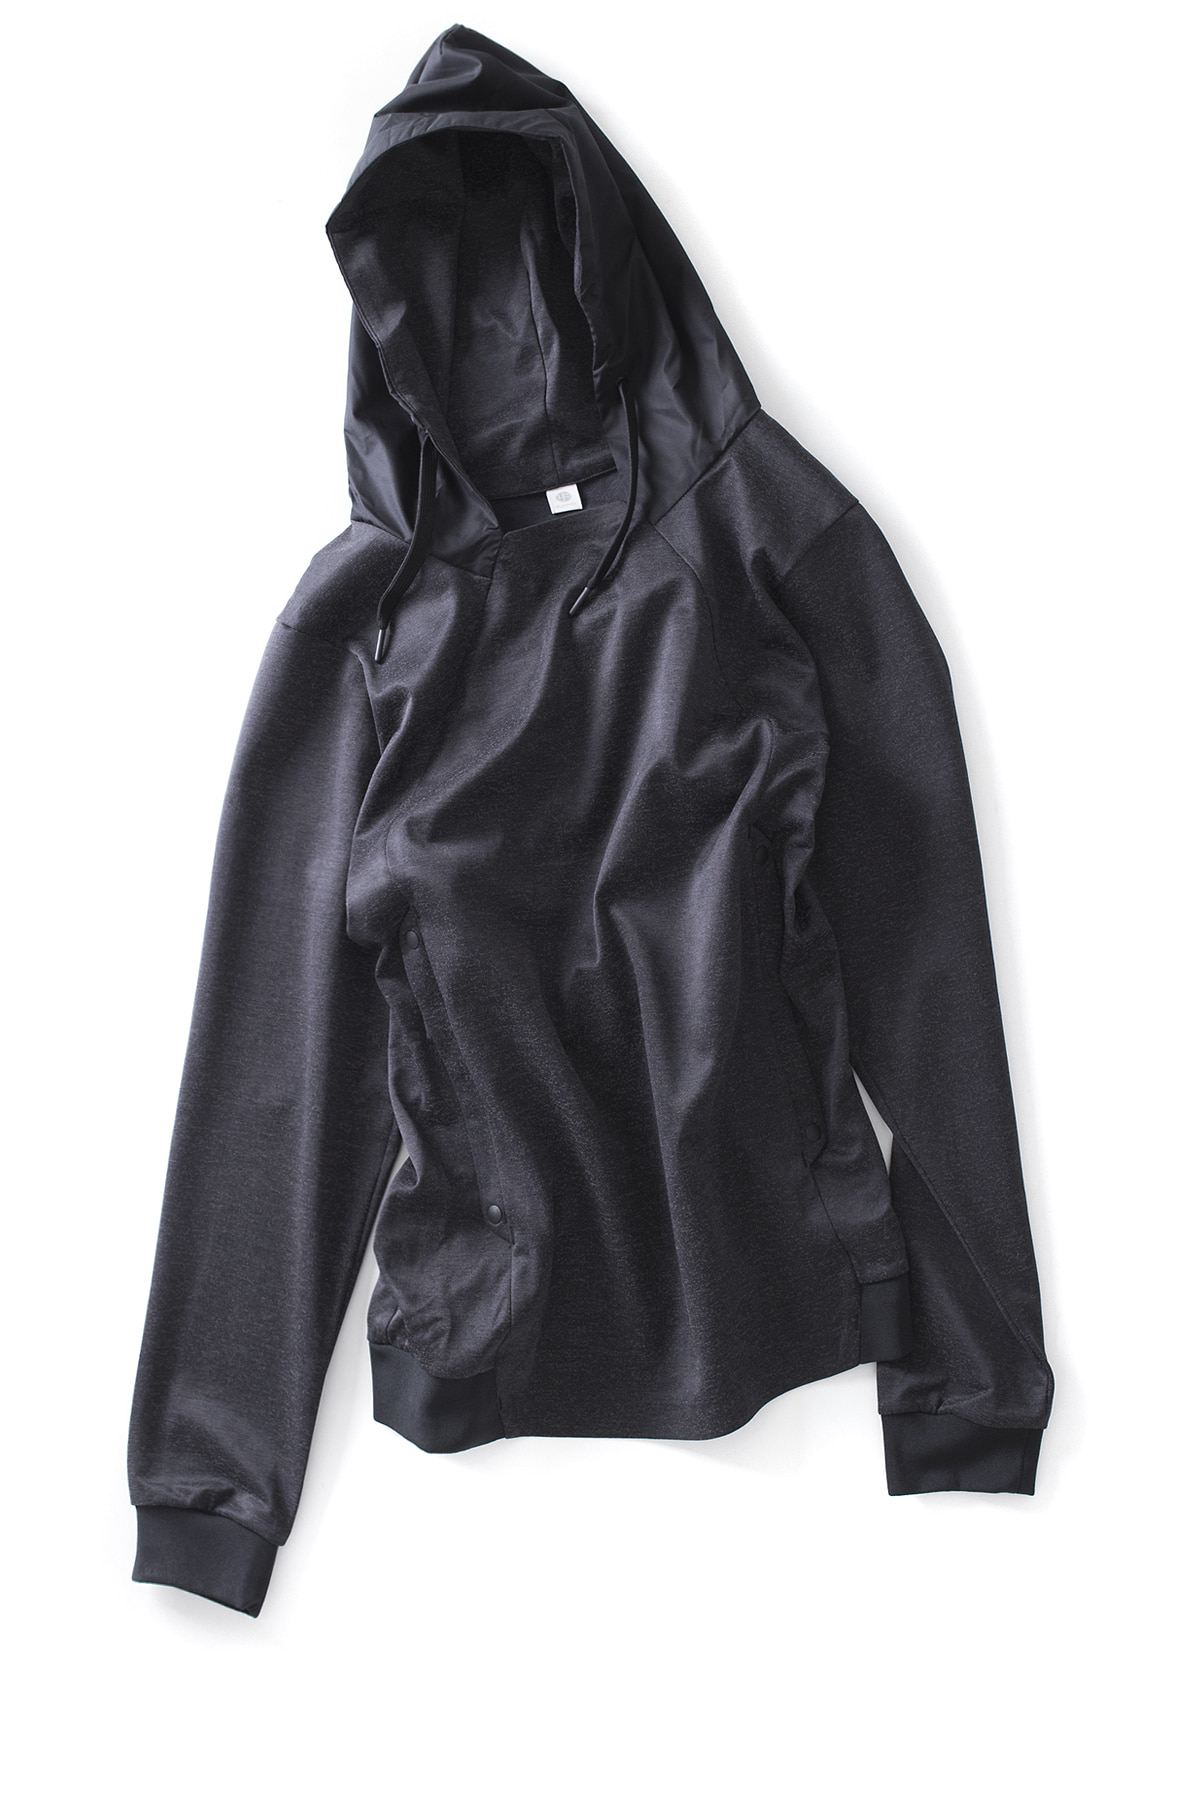 alk phenix : Tab Parka / Reflector Heather (Black)